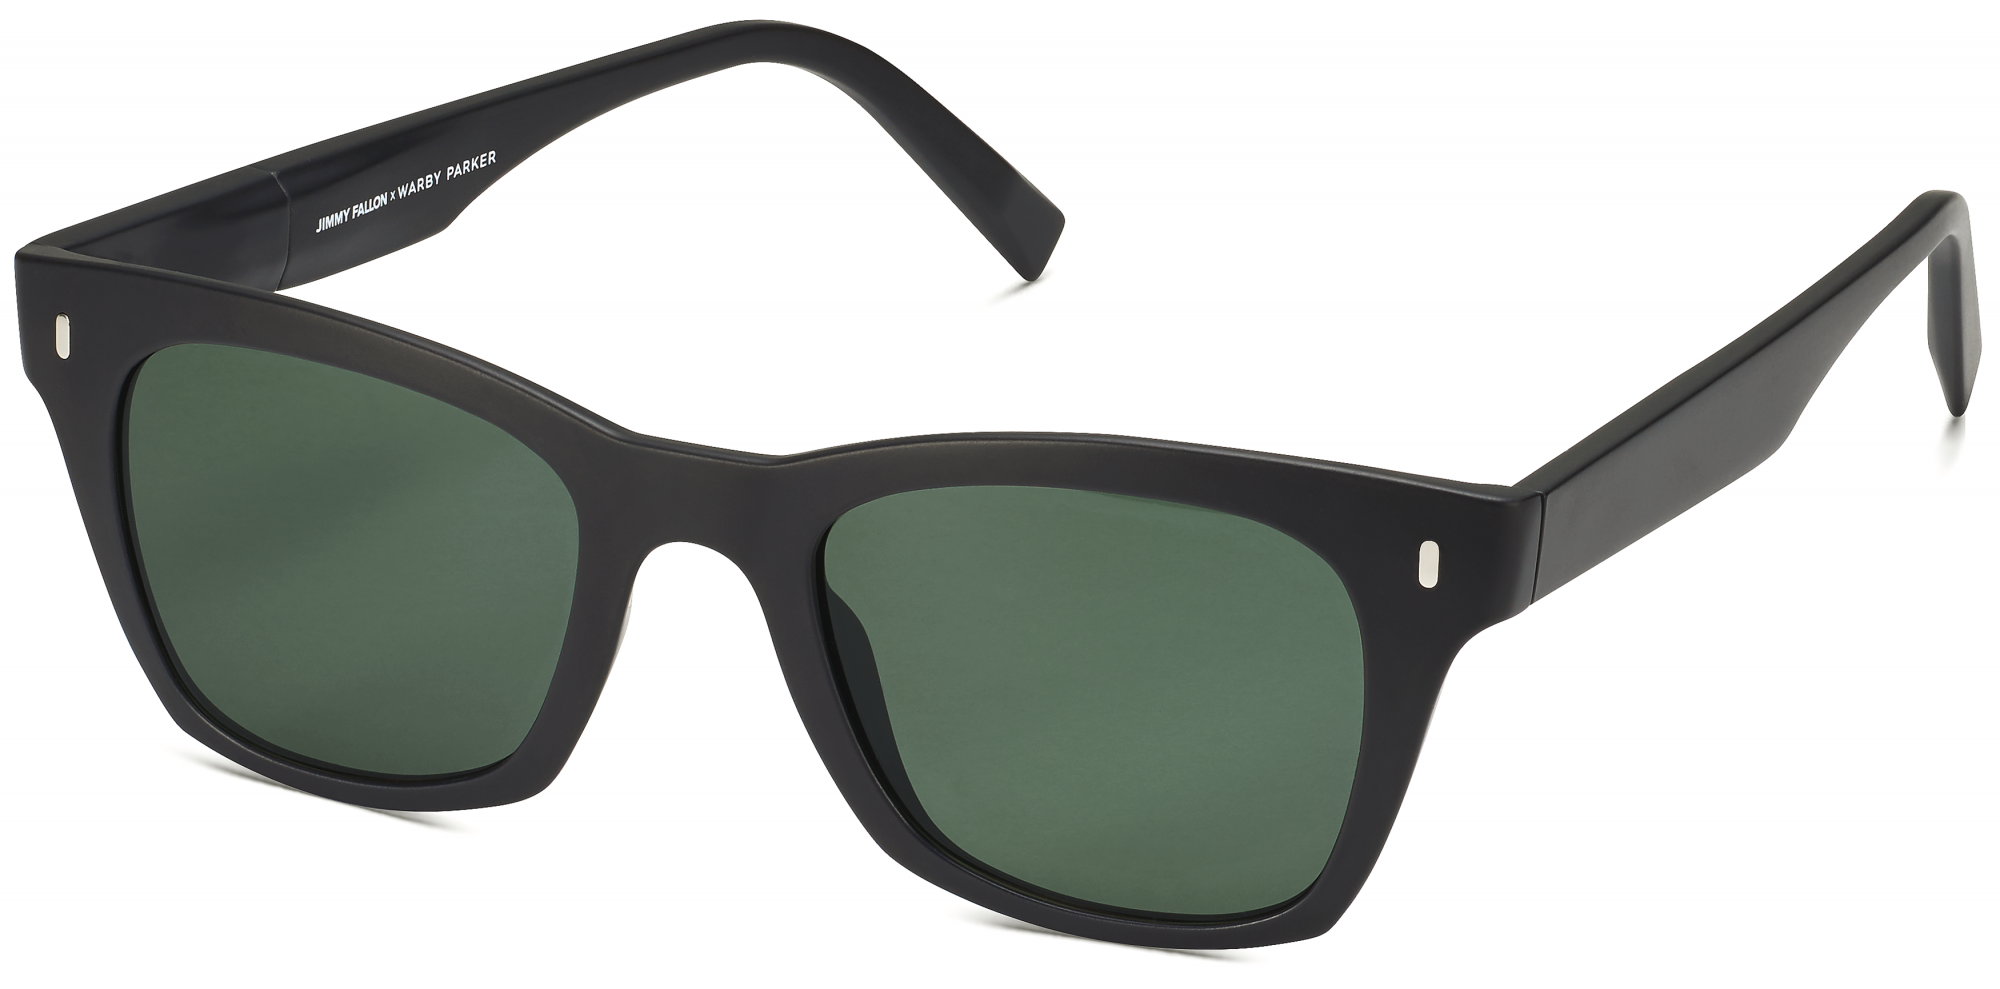 Buy It! Warby Parker SPinnies, $95; warbyparker.com